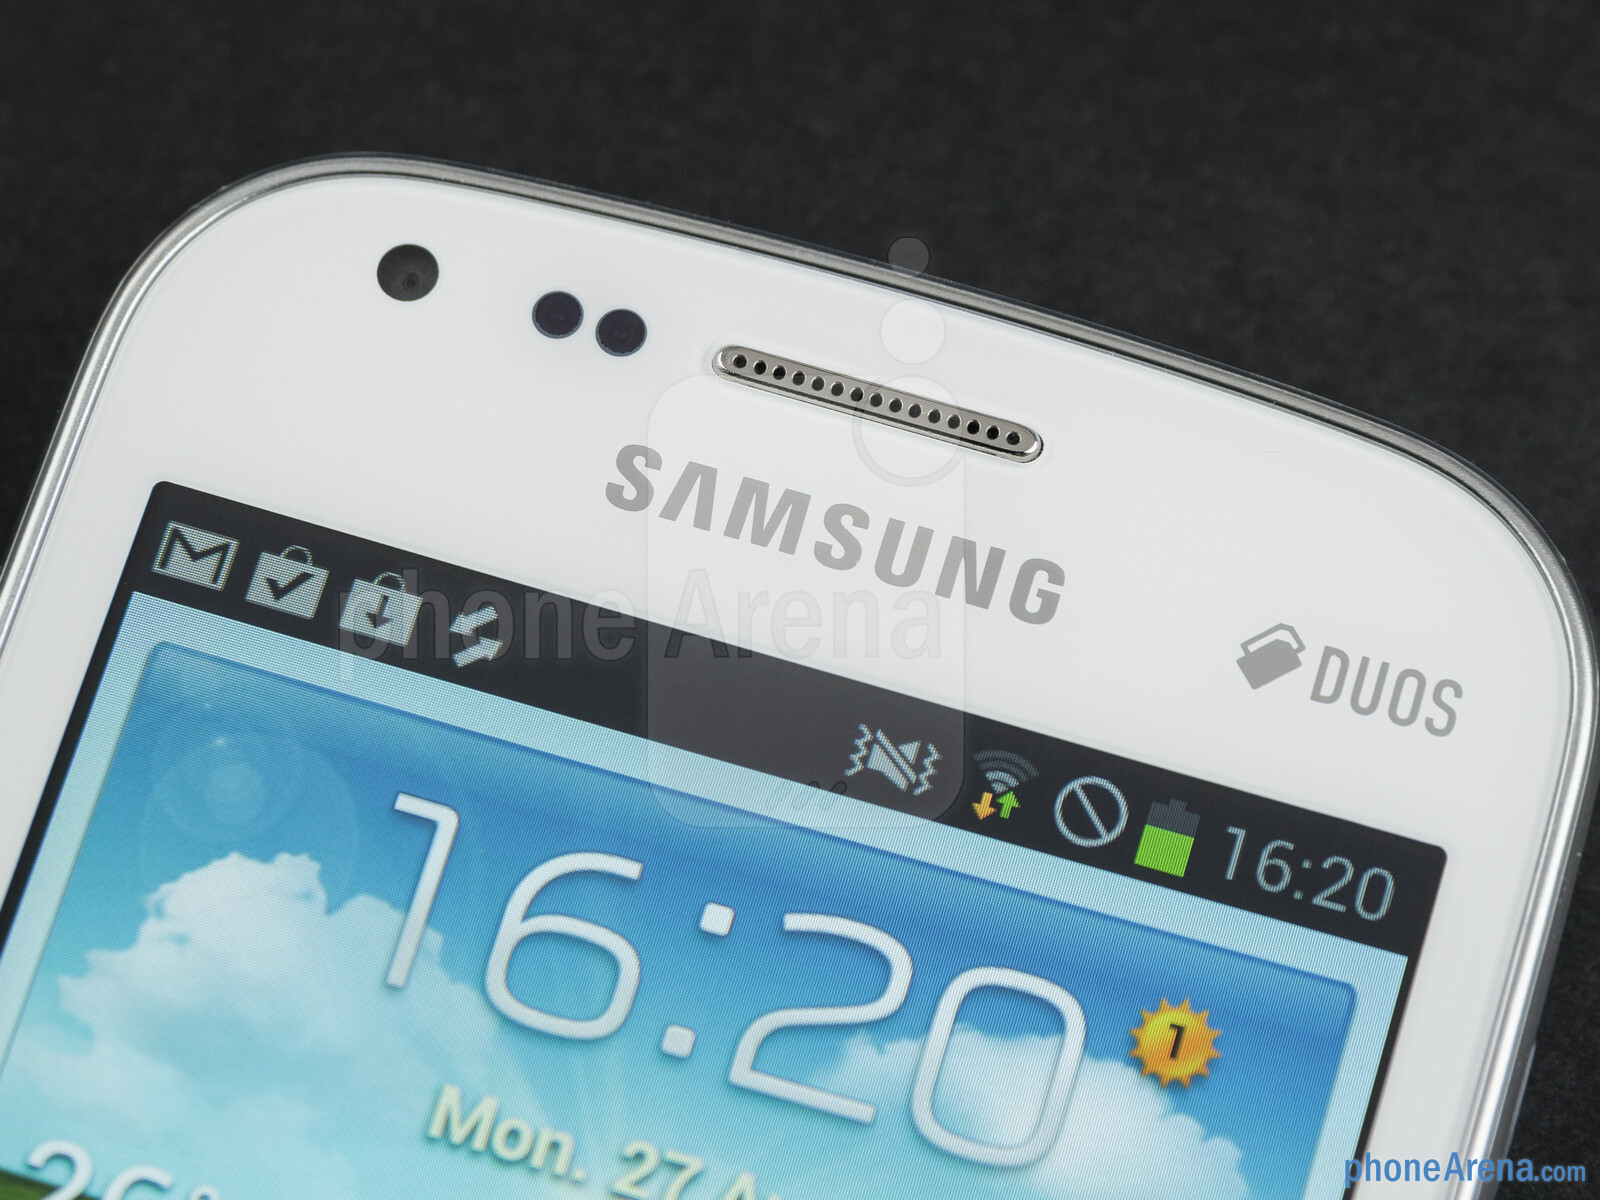 Samsung Galaxy S Duos - Full Phone Specifications, Price